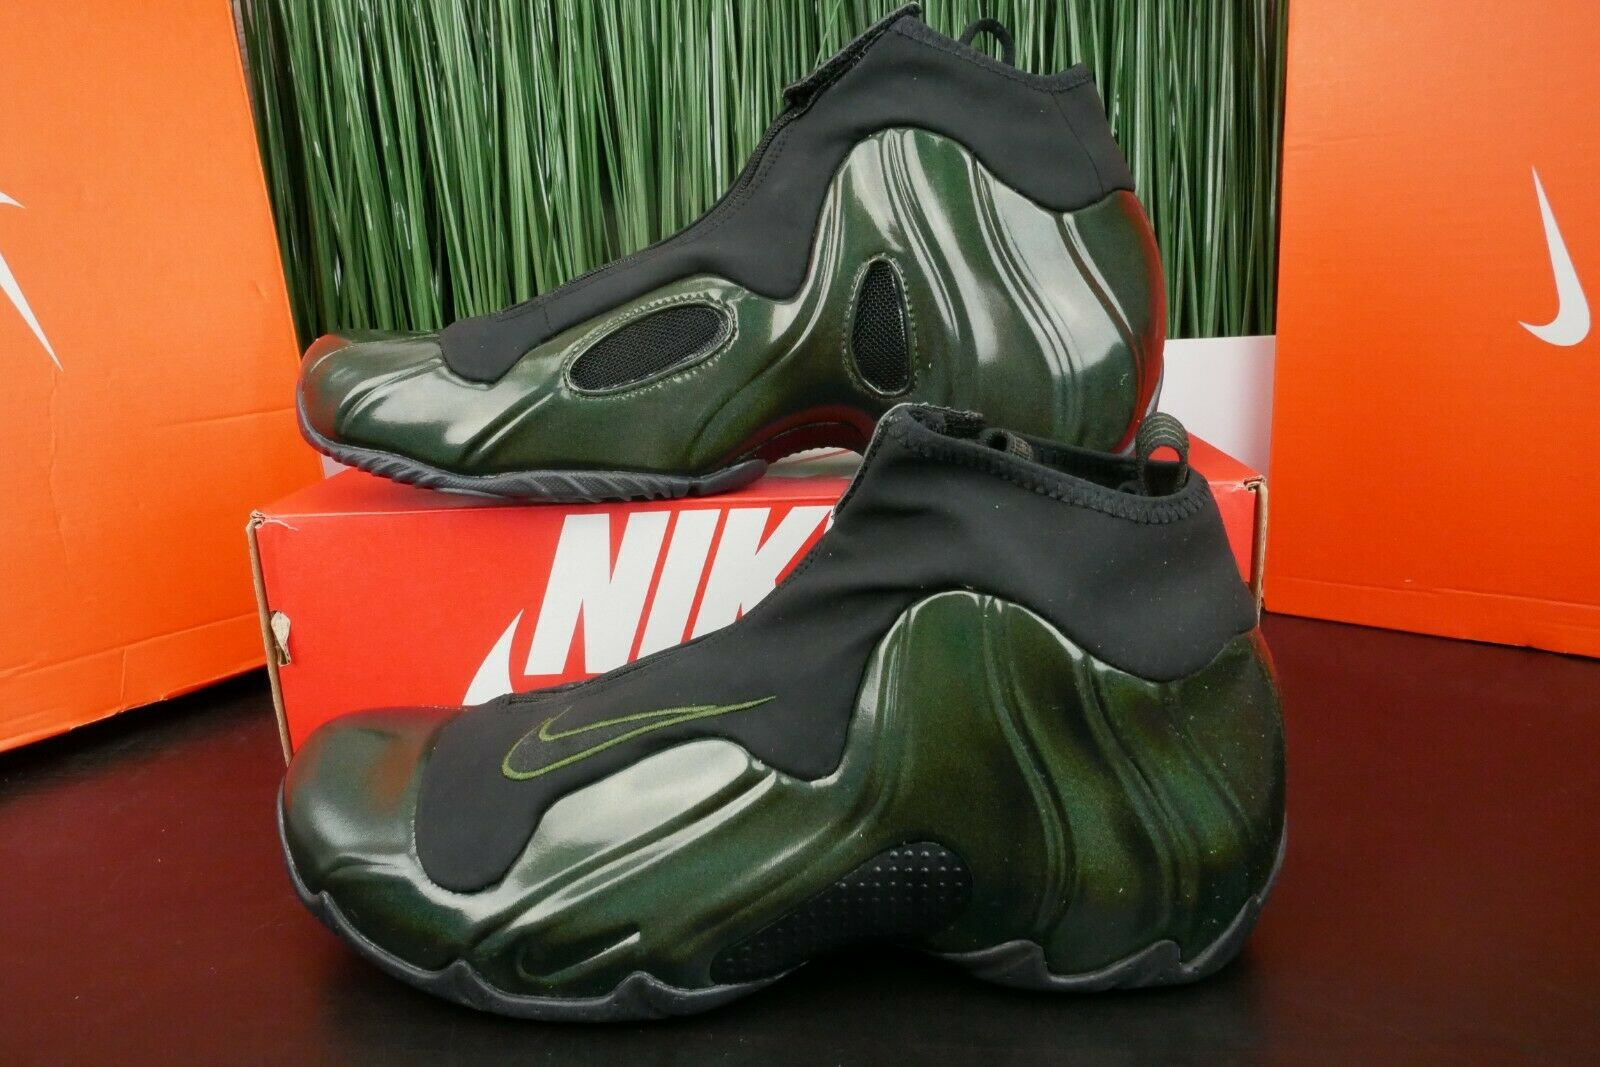 Nike Air Flightposite Mens Legion Green Basketball shoes AO9378 300 Size 11.5